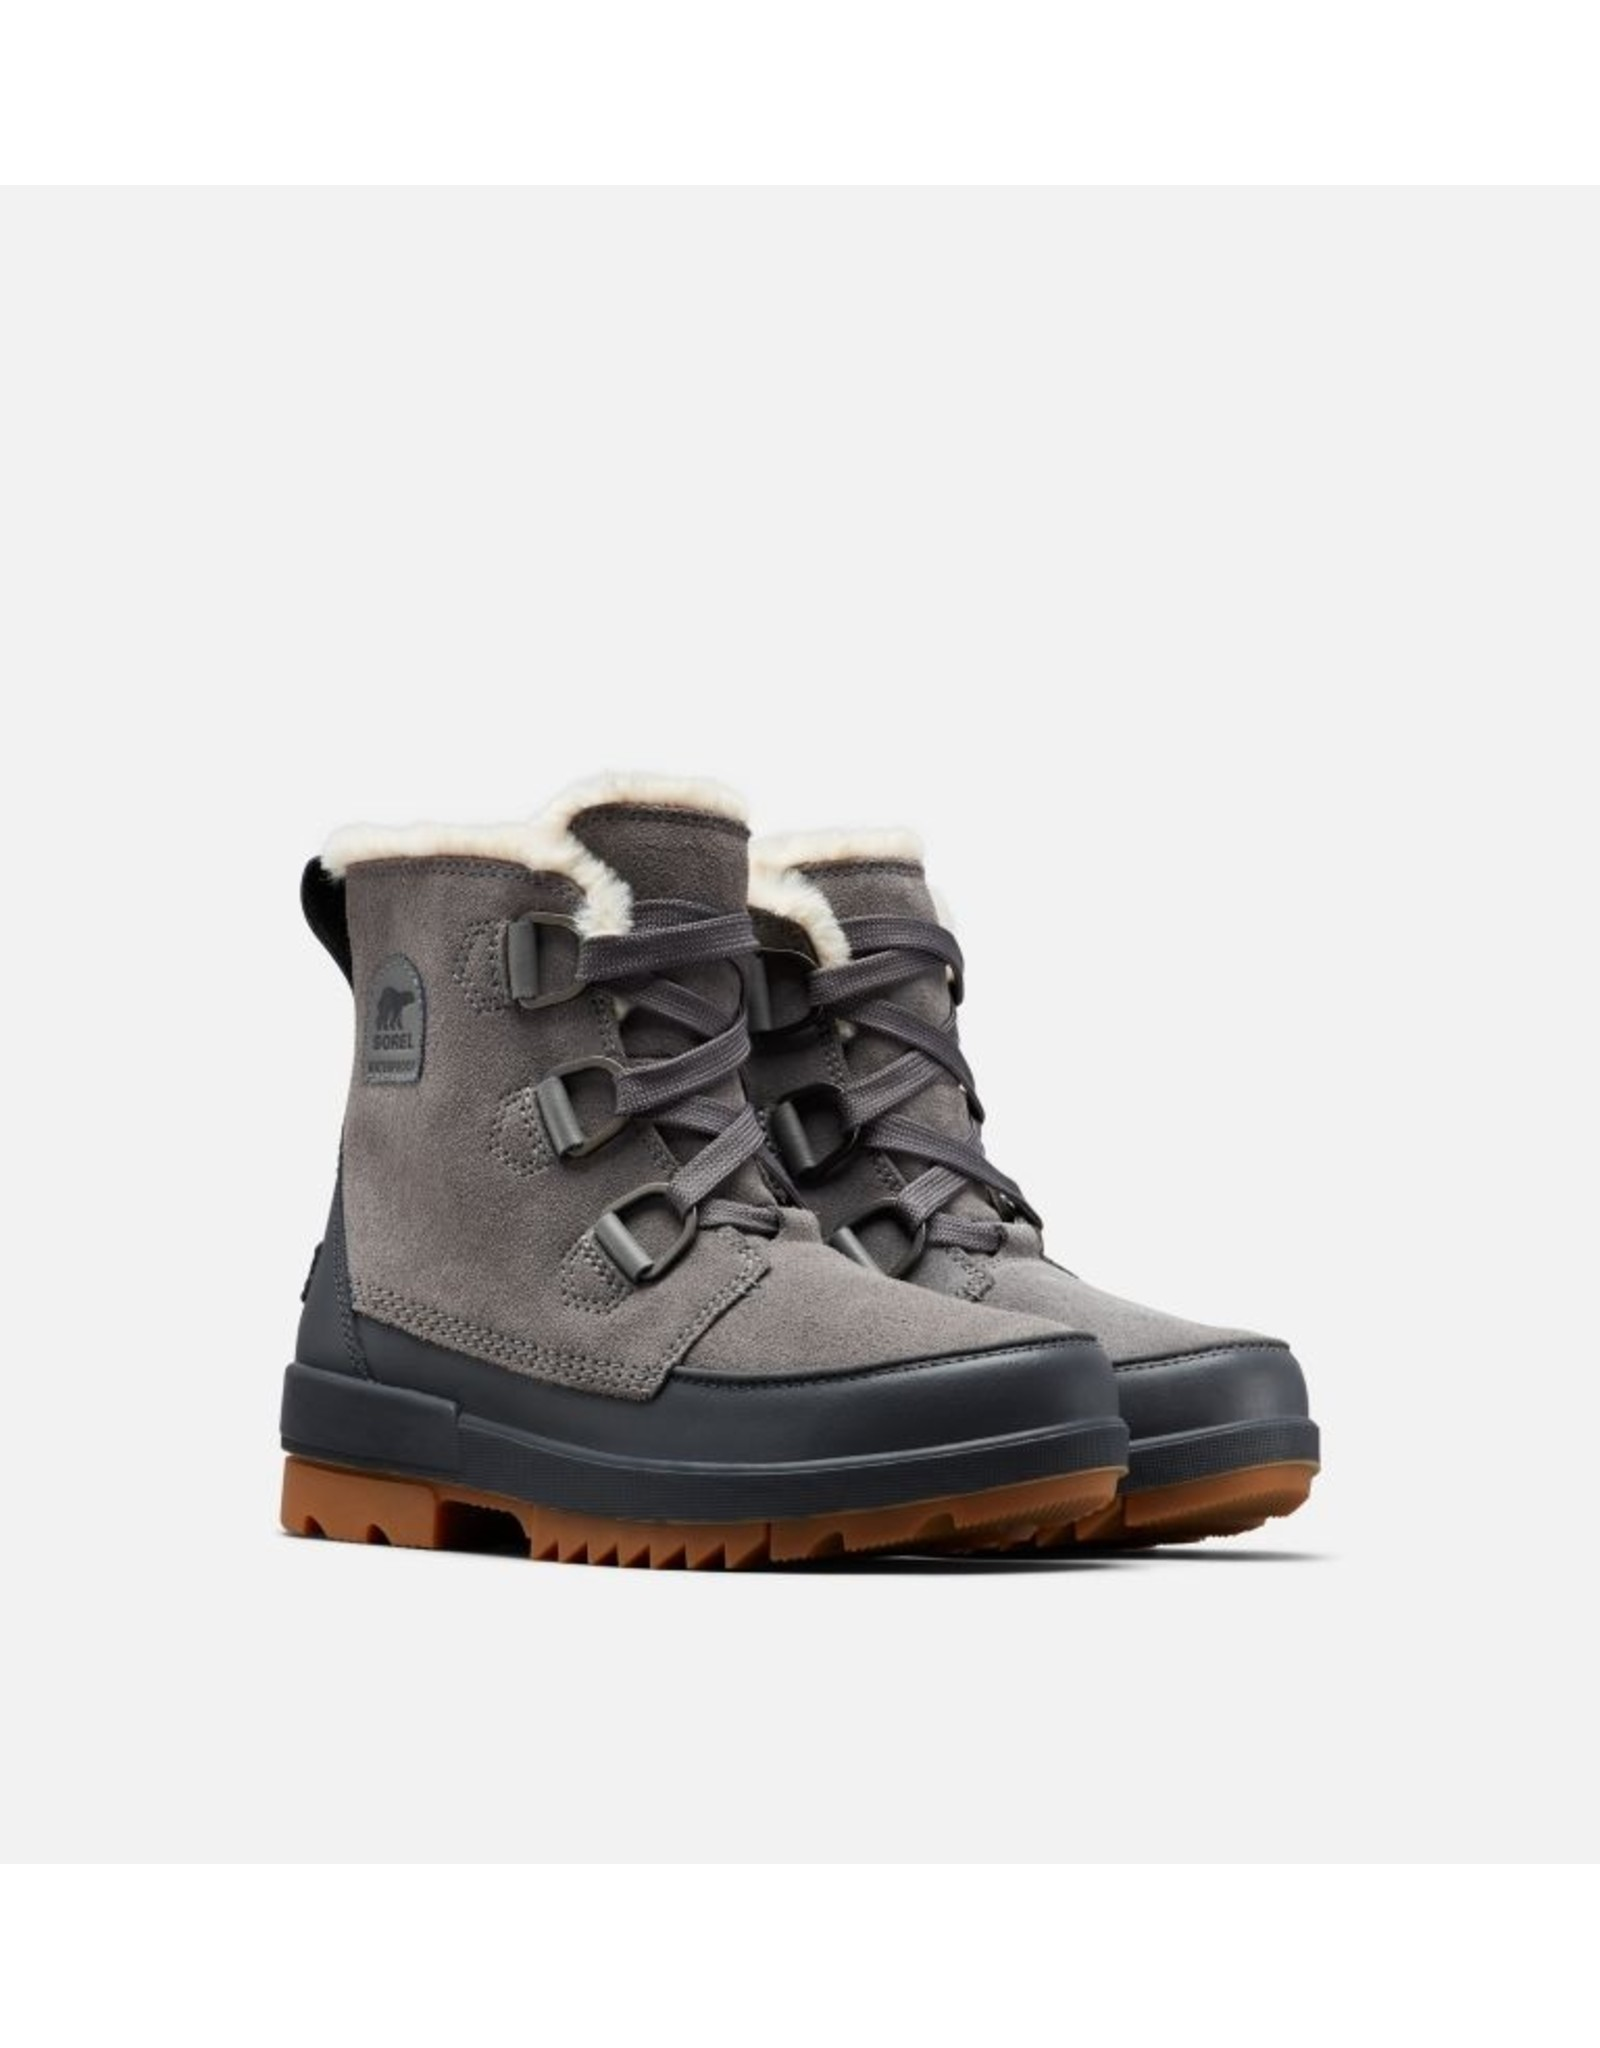 SOREL WOMEN'S TIVOLI IV-QUARRY